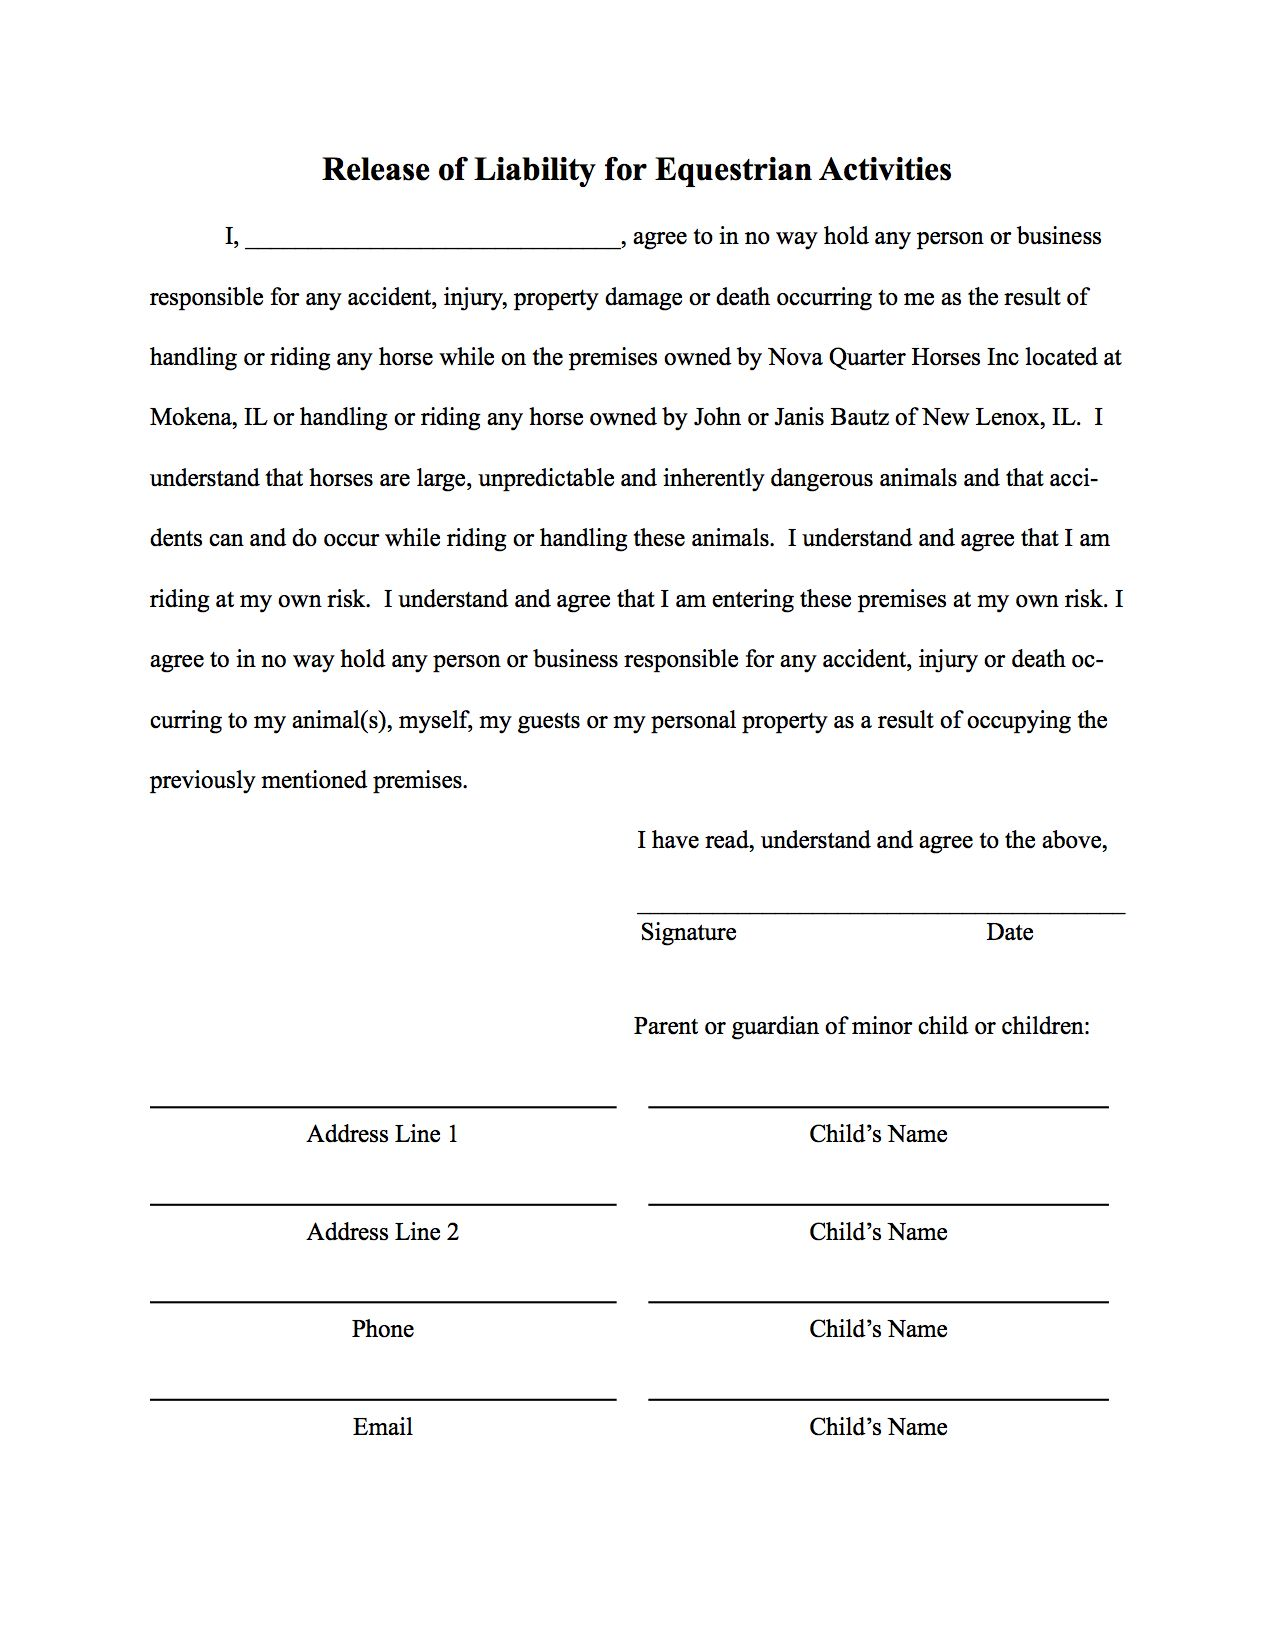 Perfect Liability Waiver Form Template Release Of Liability Form Waiver Of Liability  Template With Sample, Liability Waiver Template Free Word Templates  Liability, ... To Basic Liability Waiver Form